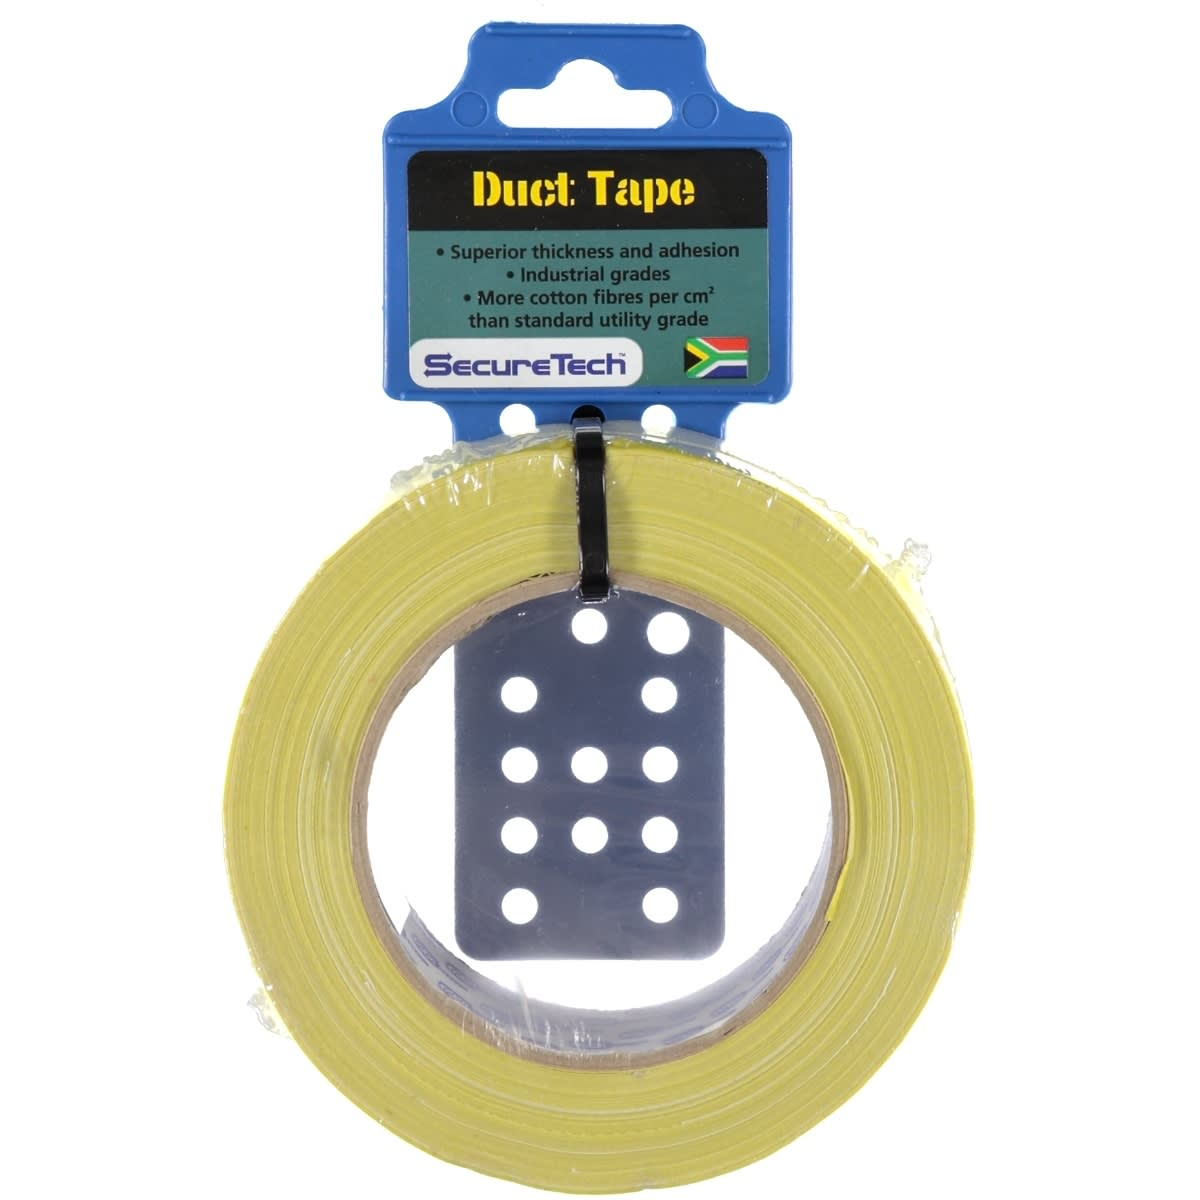 SecureTech Duct Tape 48mmx25M